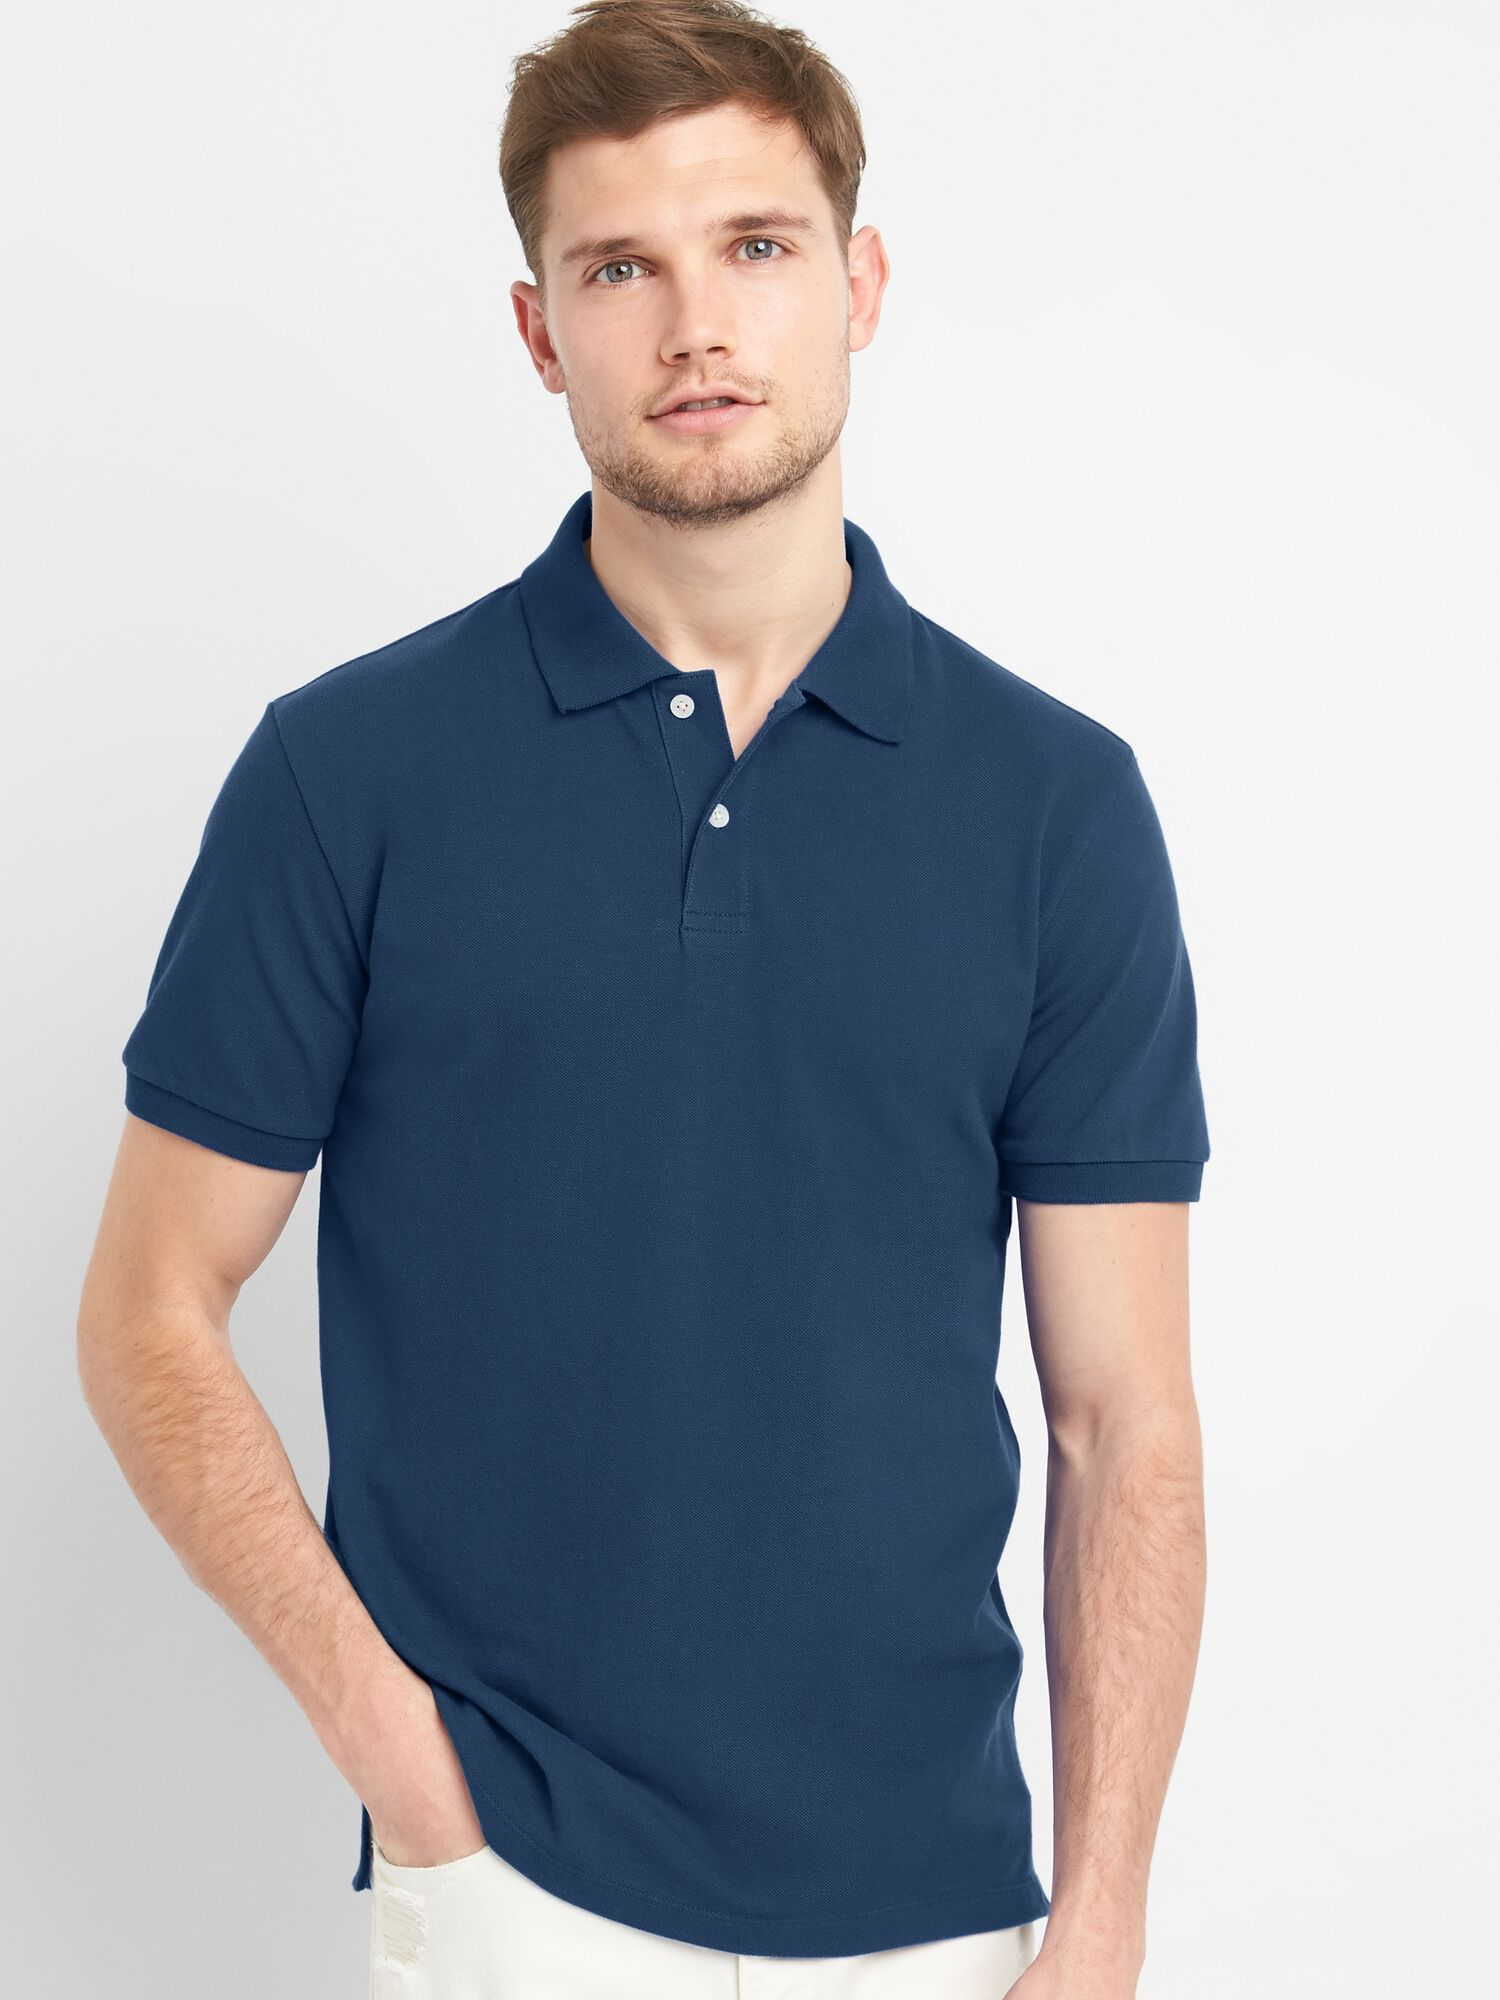 a8d58dabfa53 authentic mens t shirts polo shirts saks d6066 9f4e6; inexpensive short  sleeve pique polo shirt in stretch 3b3fb 24244